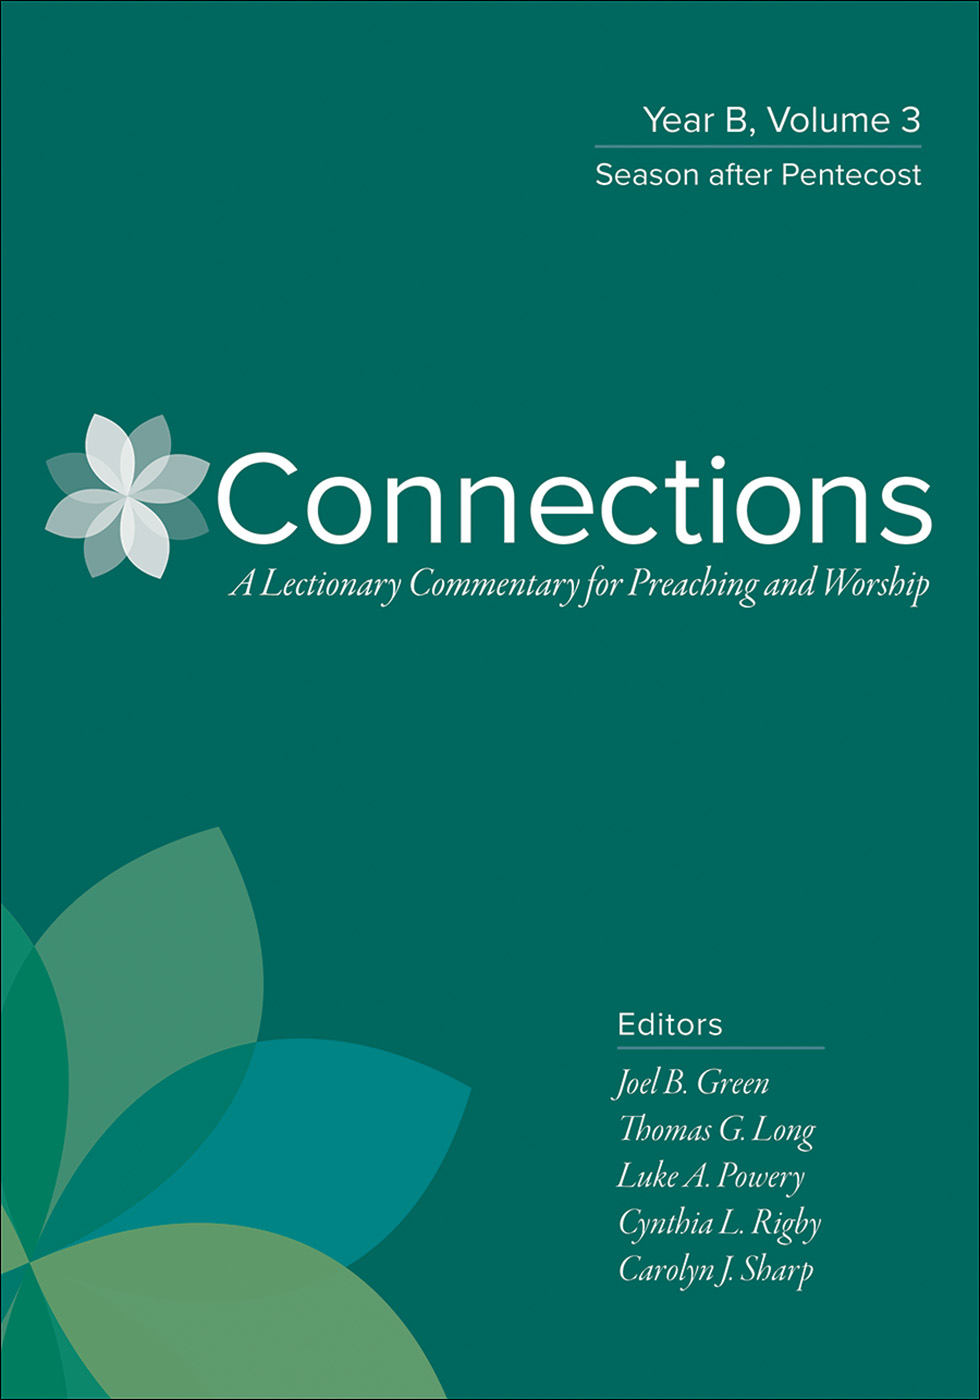 Connections, Year B, Vol 3